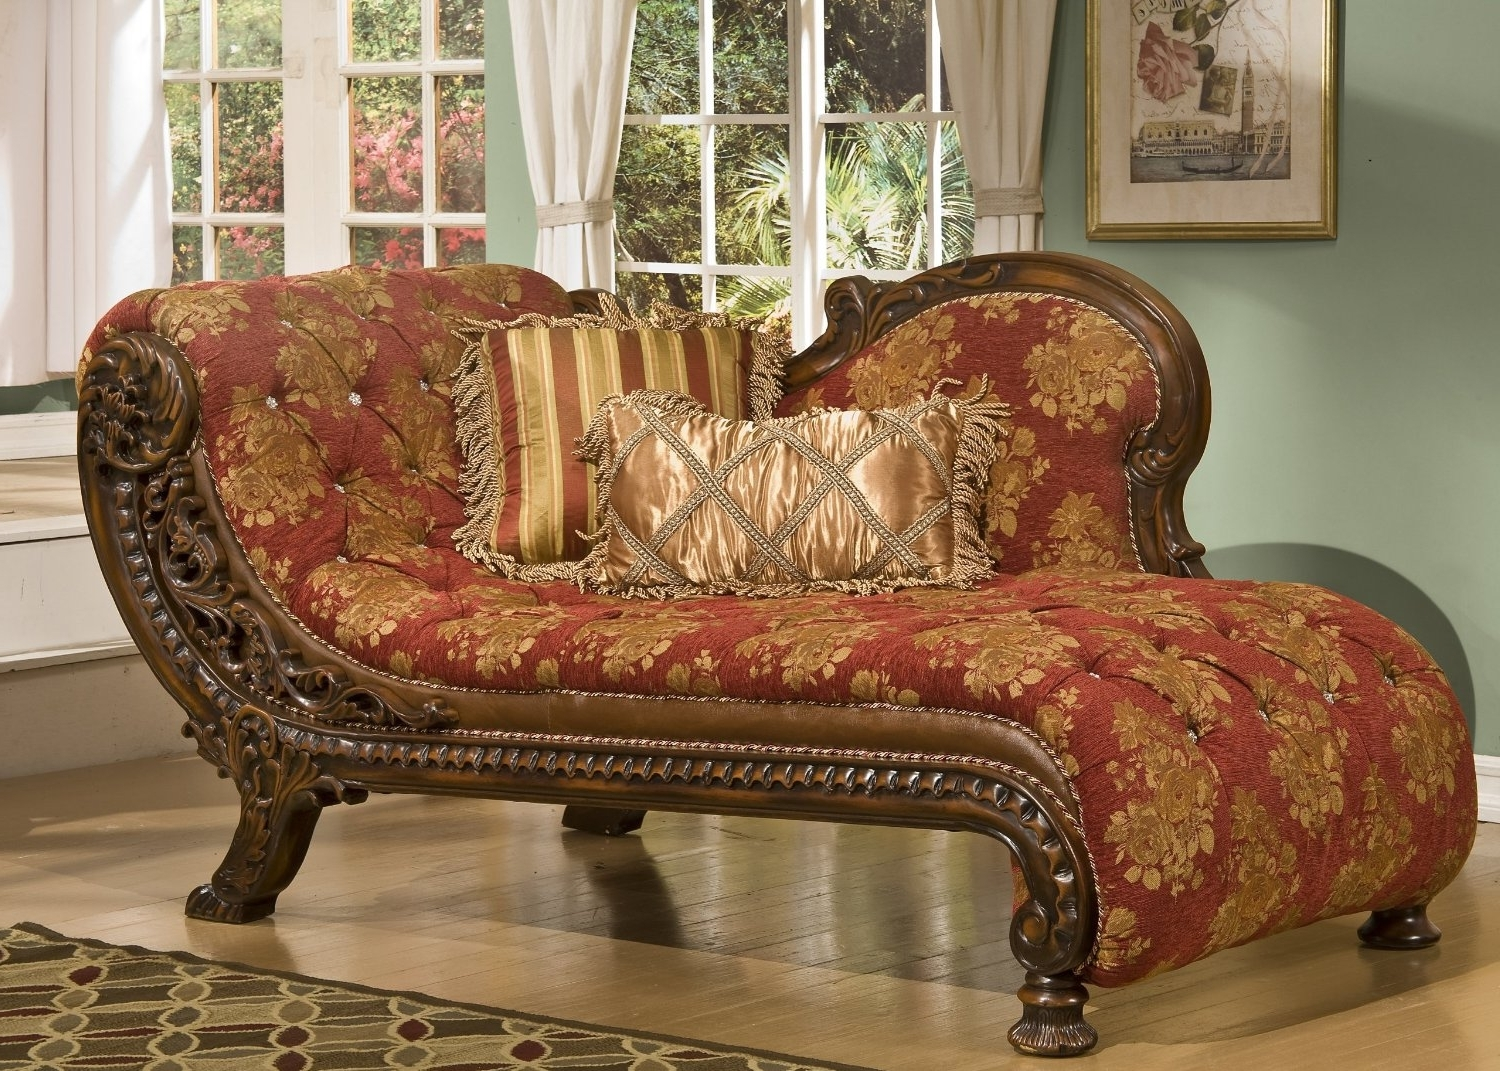 Large Chaises Intended For Fashionable Design Of Large Chaise Lounge With Bedroom Beige Velvet Tufted (View 3 of 15)